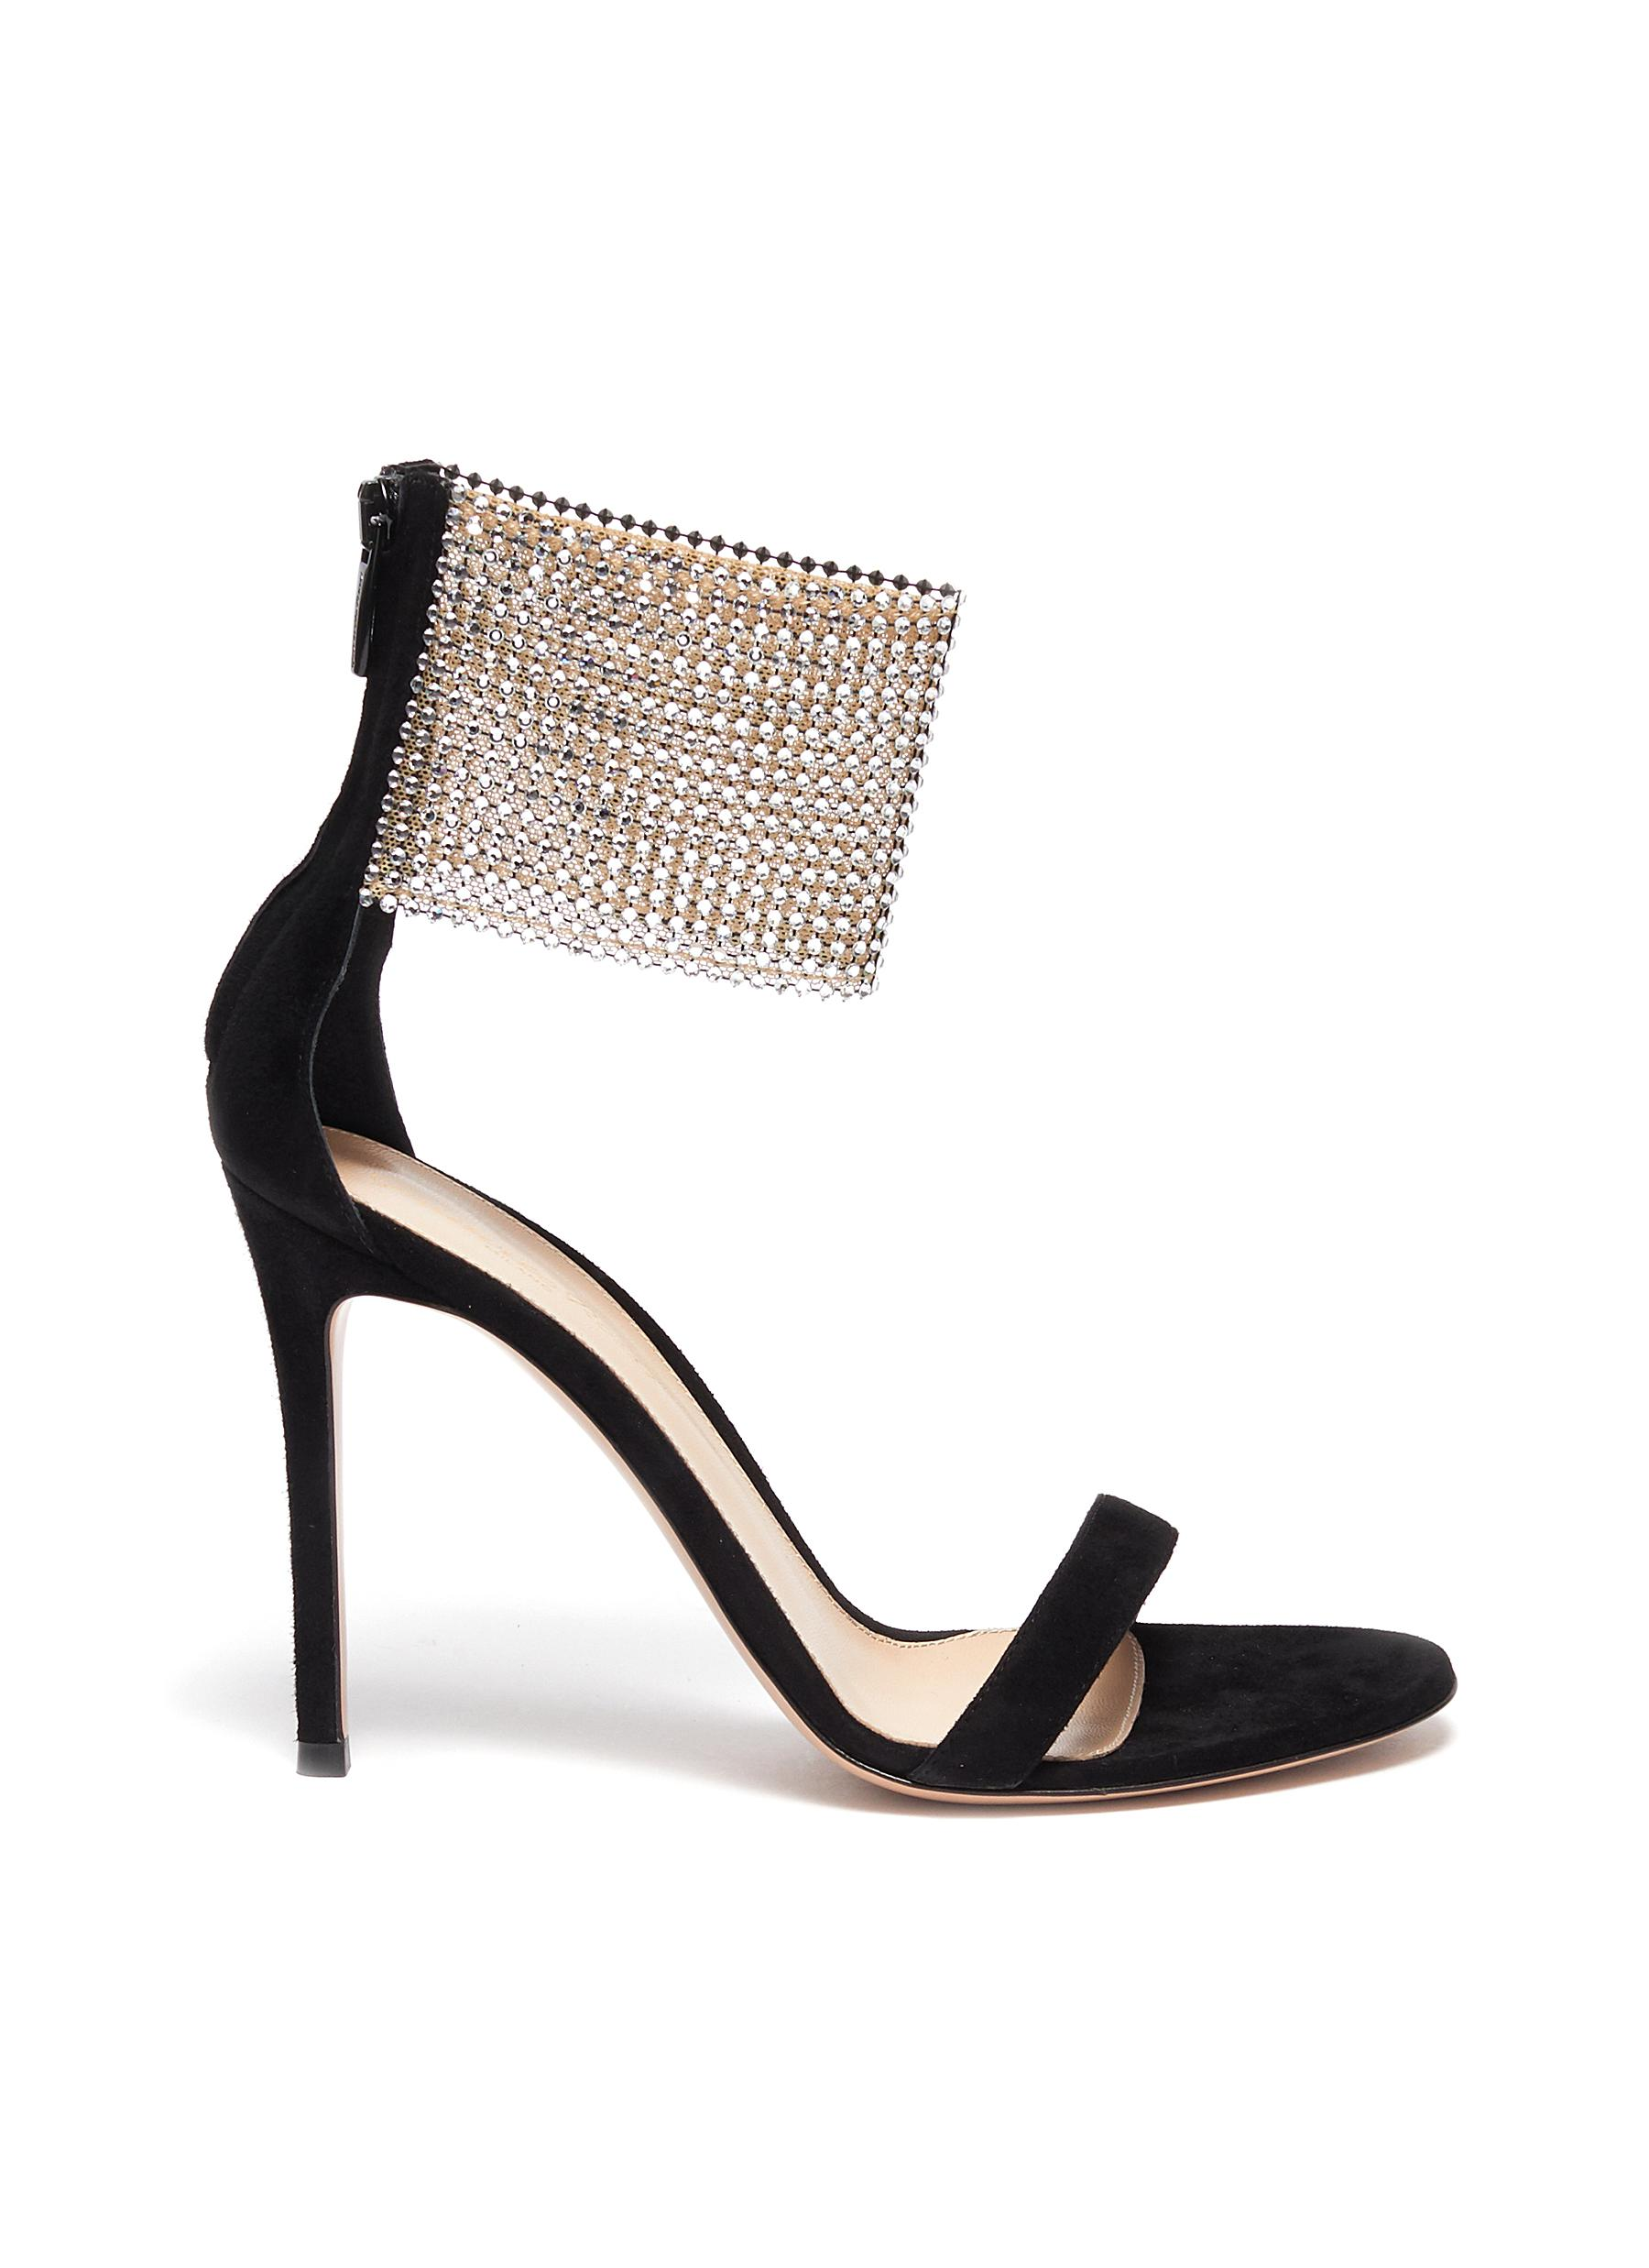 Gianvito Rossi High Heels Adore crystal net ankle strap suede sandals